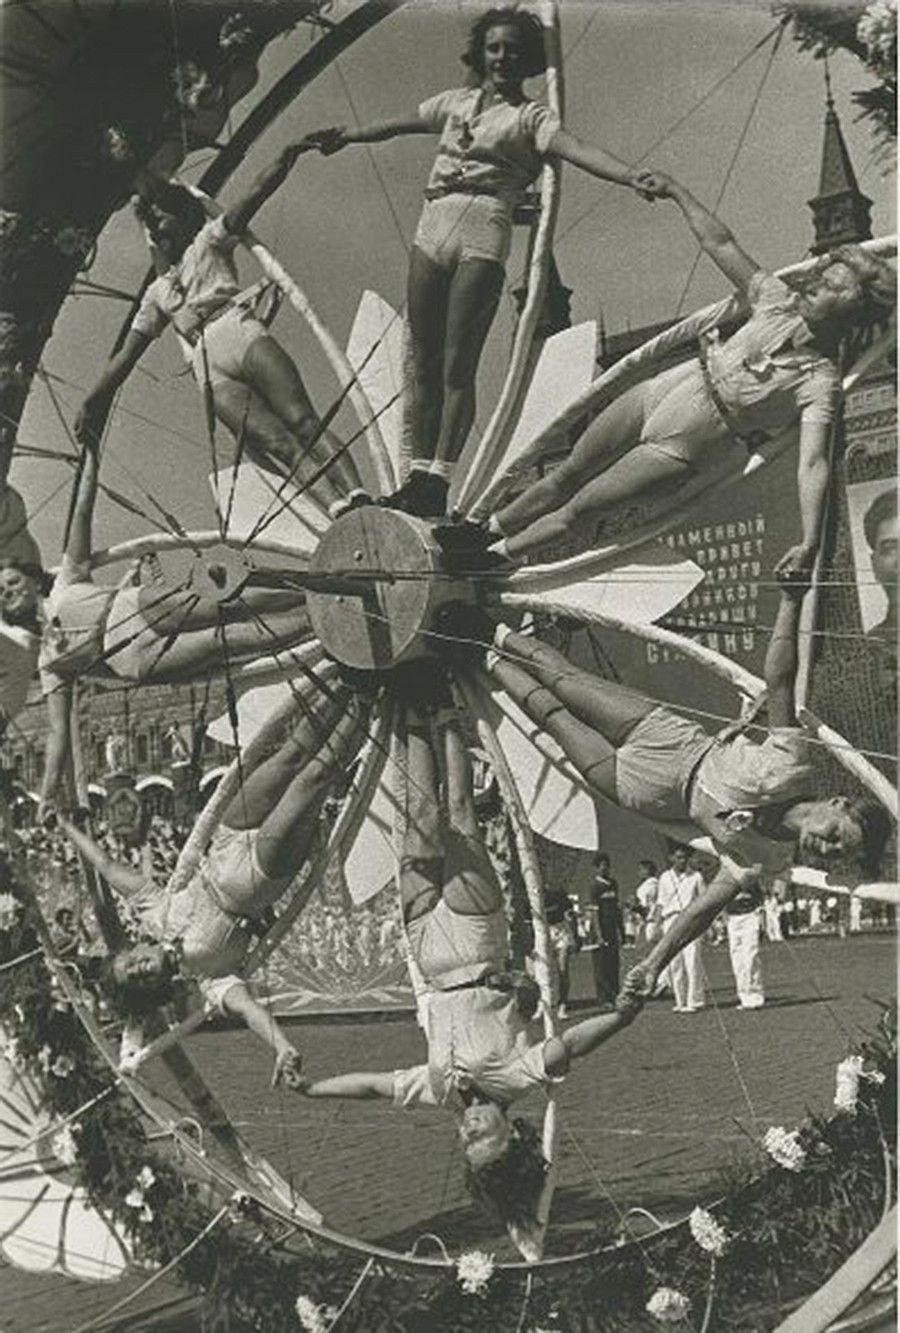 PHOTO Un groupe de gymnastes féminines en spectacle, 1936